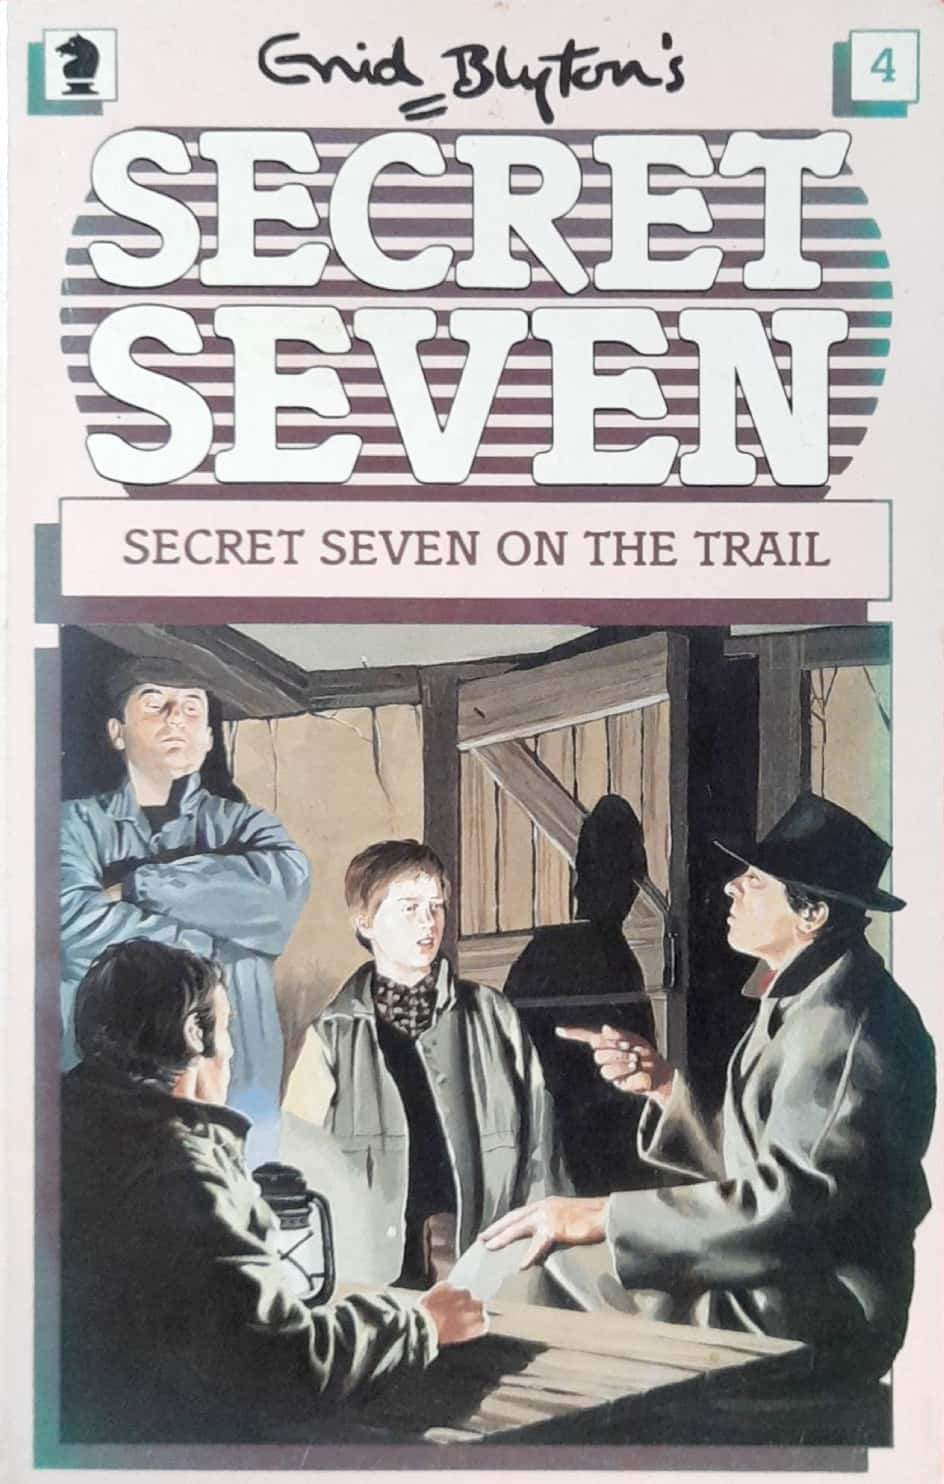 Secret Seven On The Trail (The Secret Seven #4)